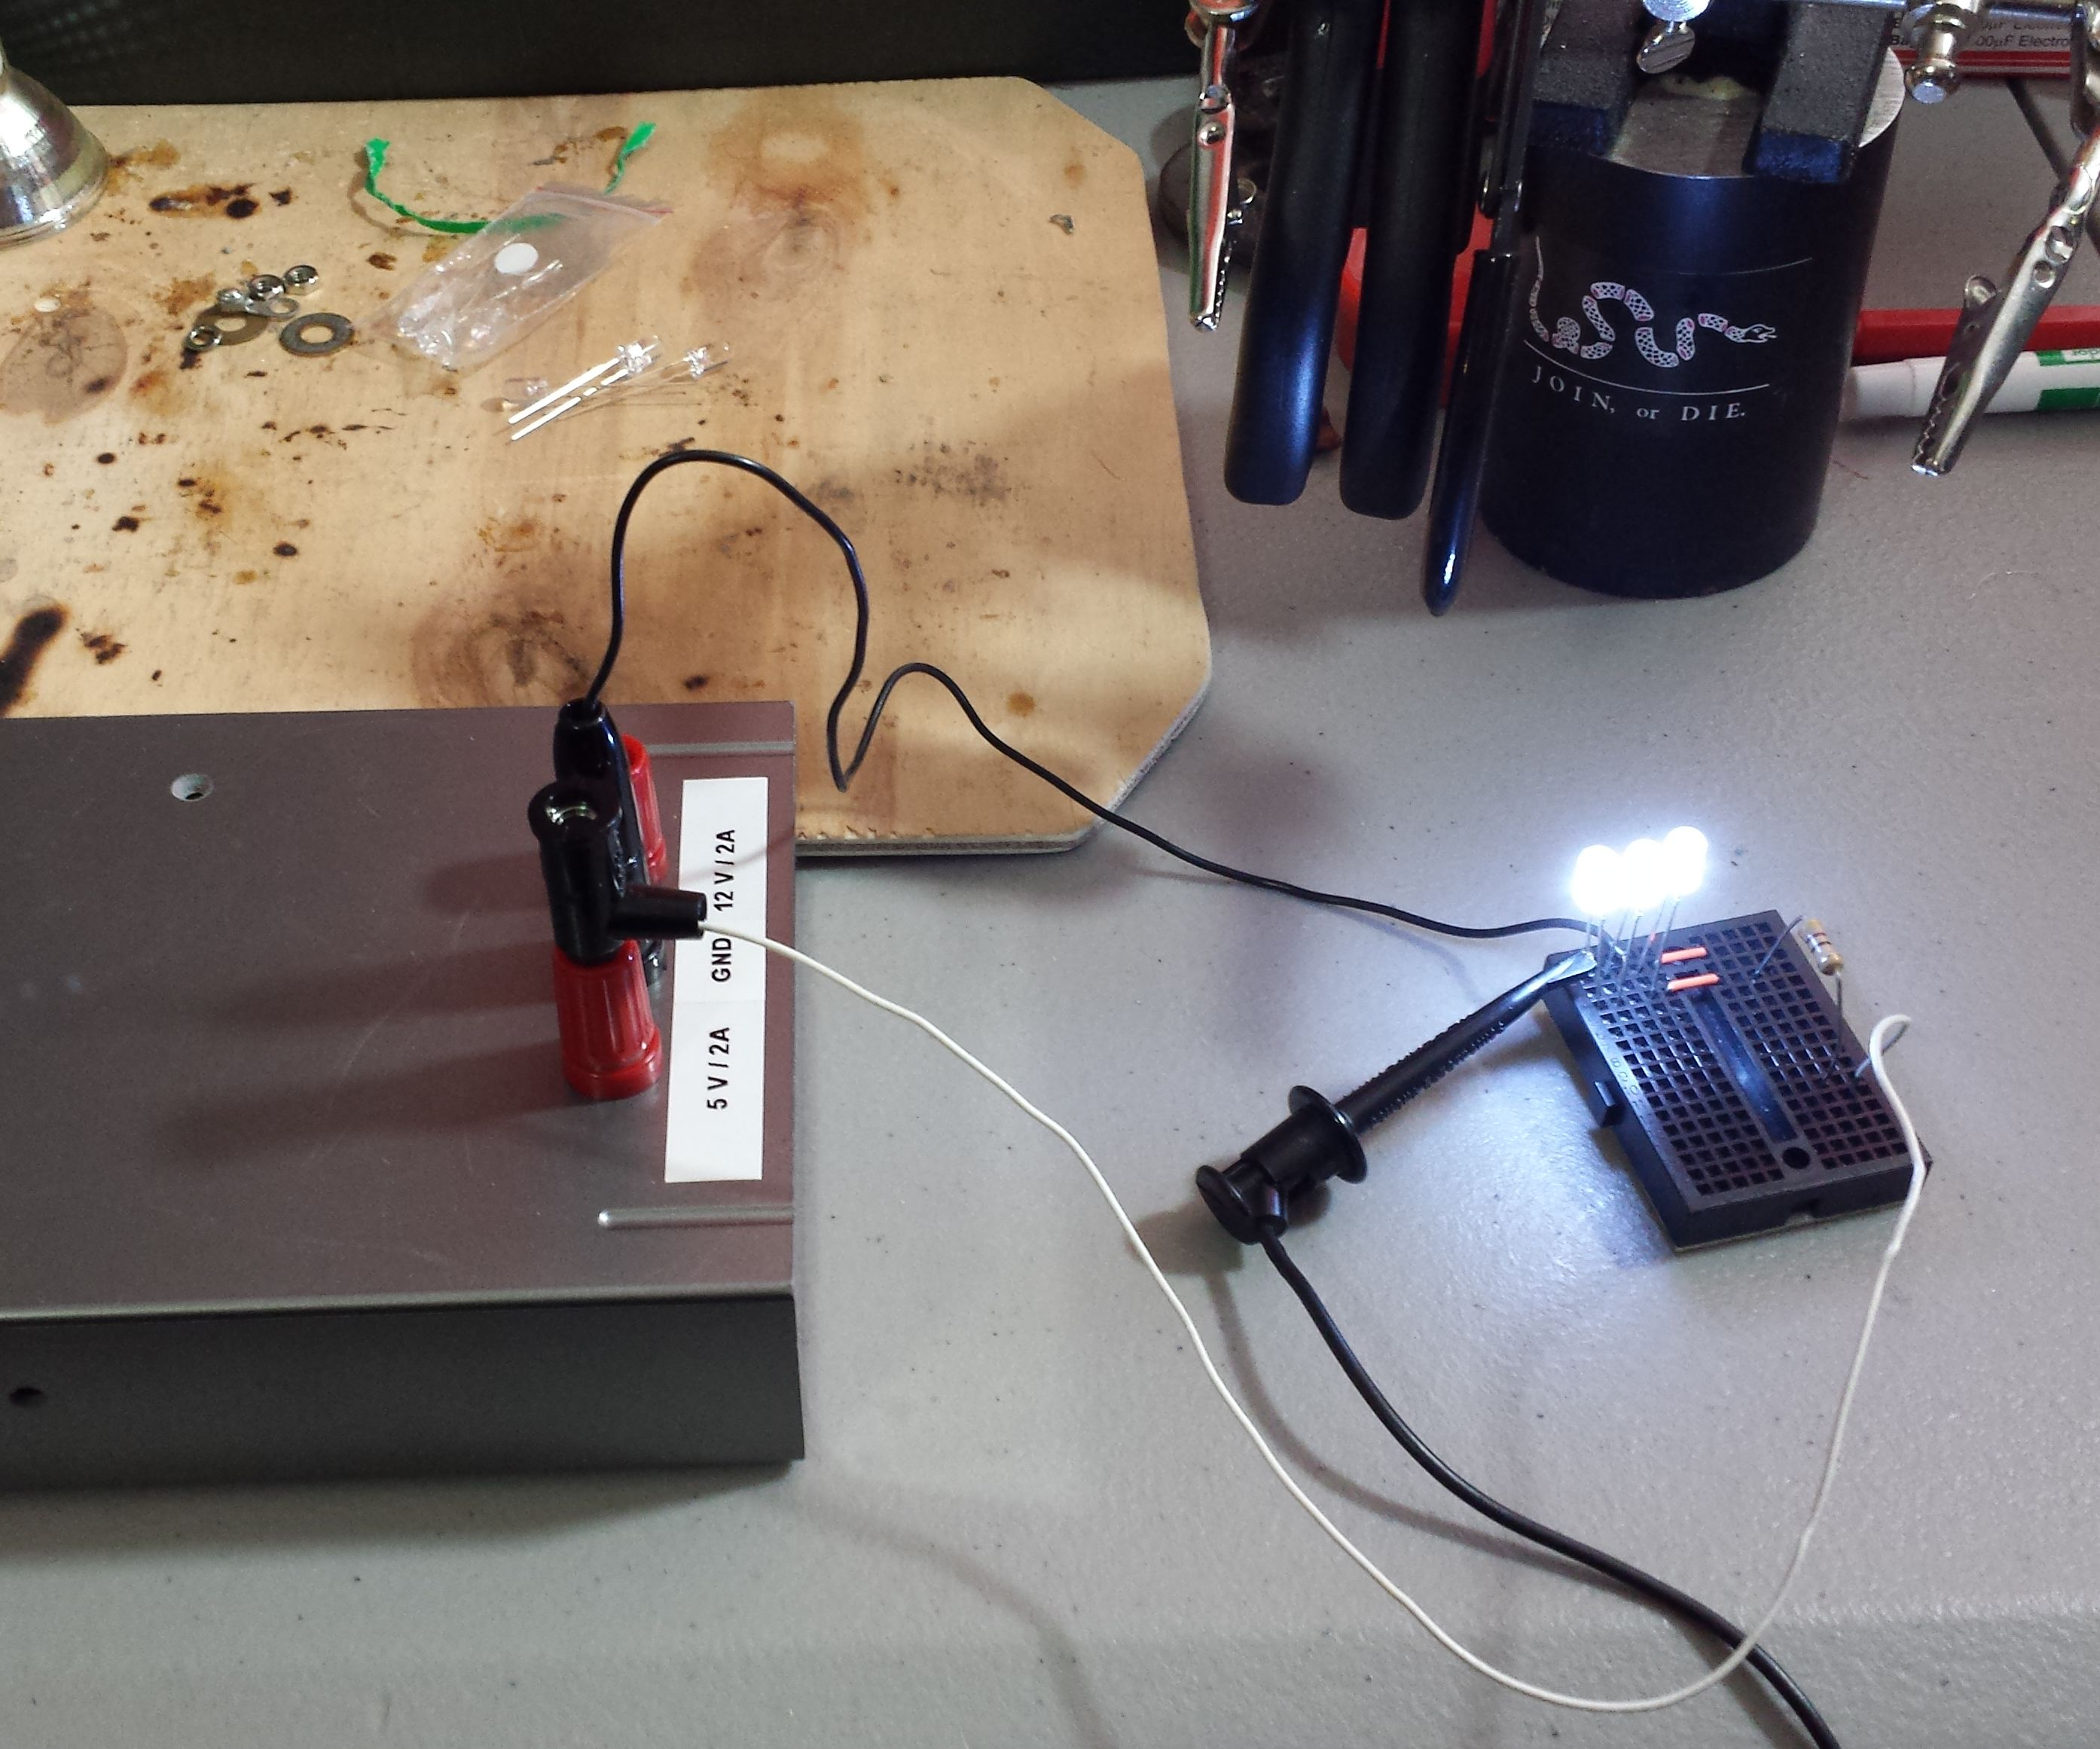 Building a super simple regulated bench power supply from an old external hard drive